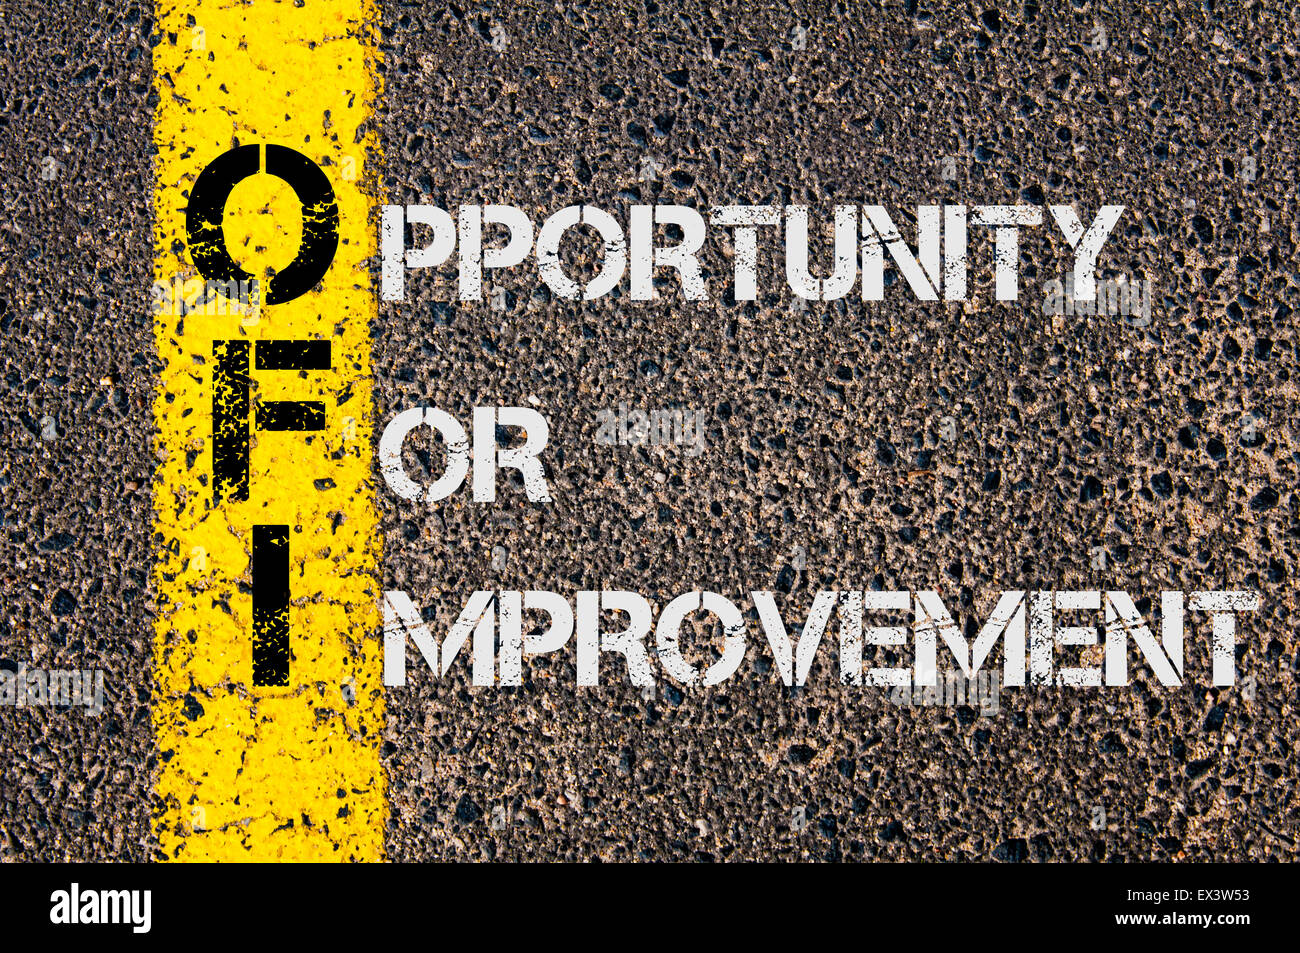 concept image of business acronym ofi as opportunity for improvement stock photo  84908127